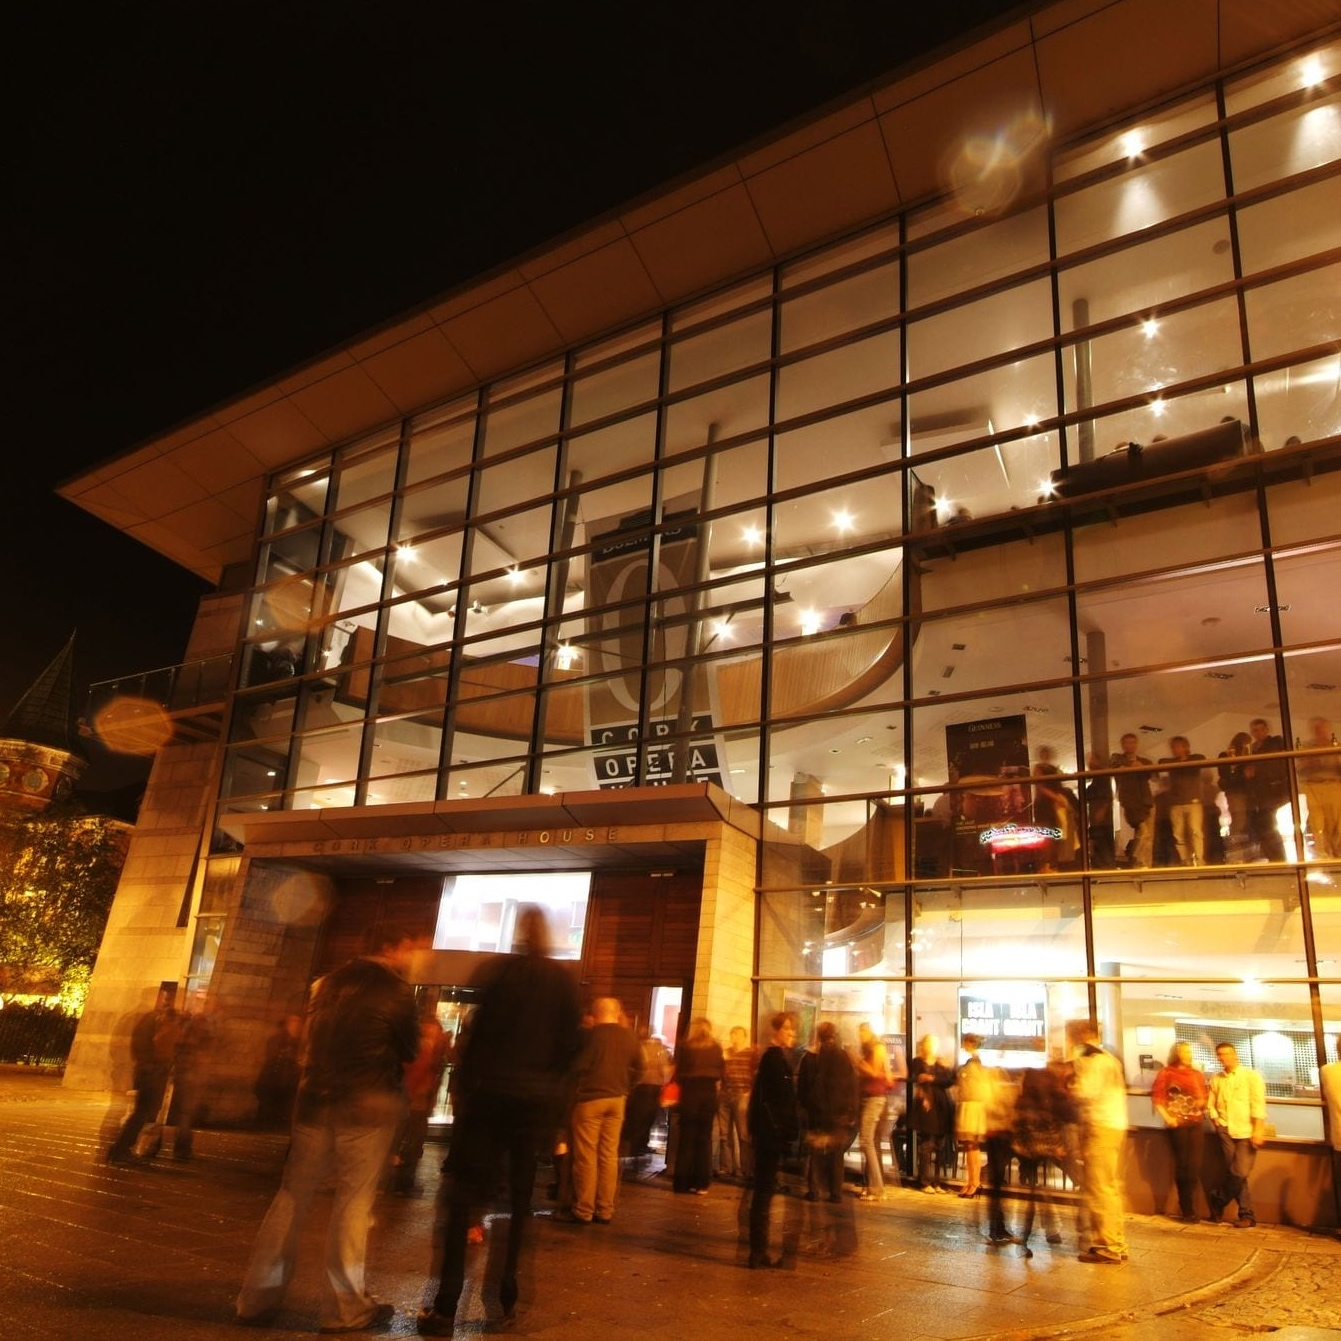 Night scene of the frontage of Cork Opera House